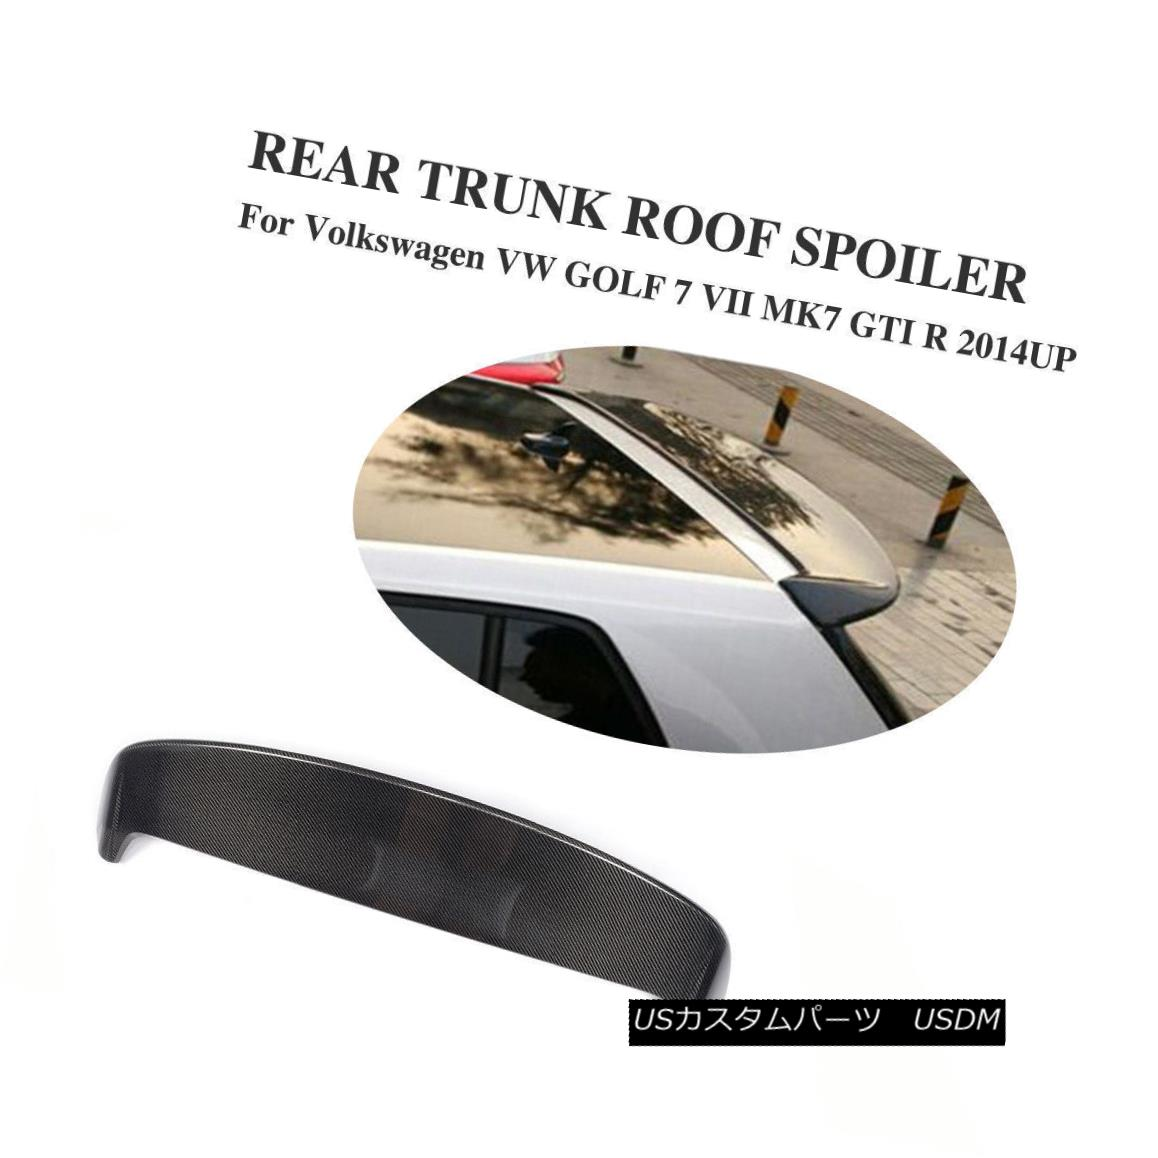 エアロパーツ Carbon Rear Rear Trunk Spoiler Roof Wing for Volkswagen VW GOLF 7 VII MK7 14-17 Volkswagen VW GOLF 7 VII MK7 14-17用カーボンリアリアトランクスポイラールーフウィング